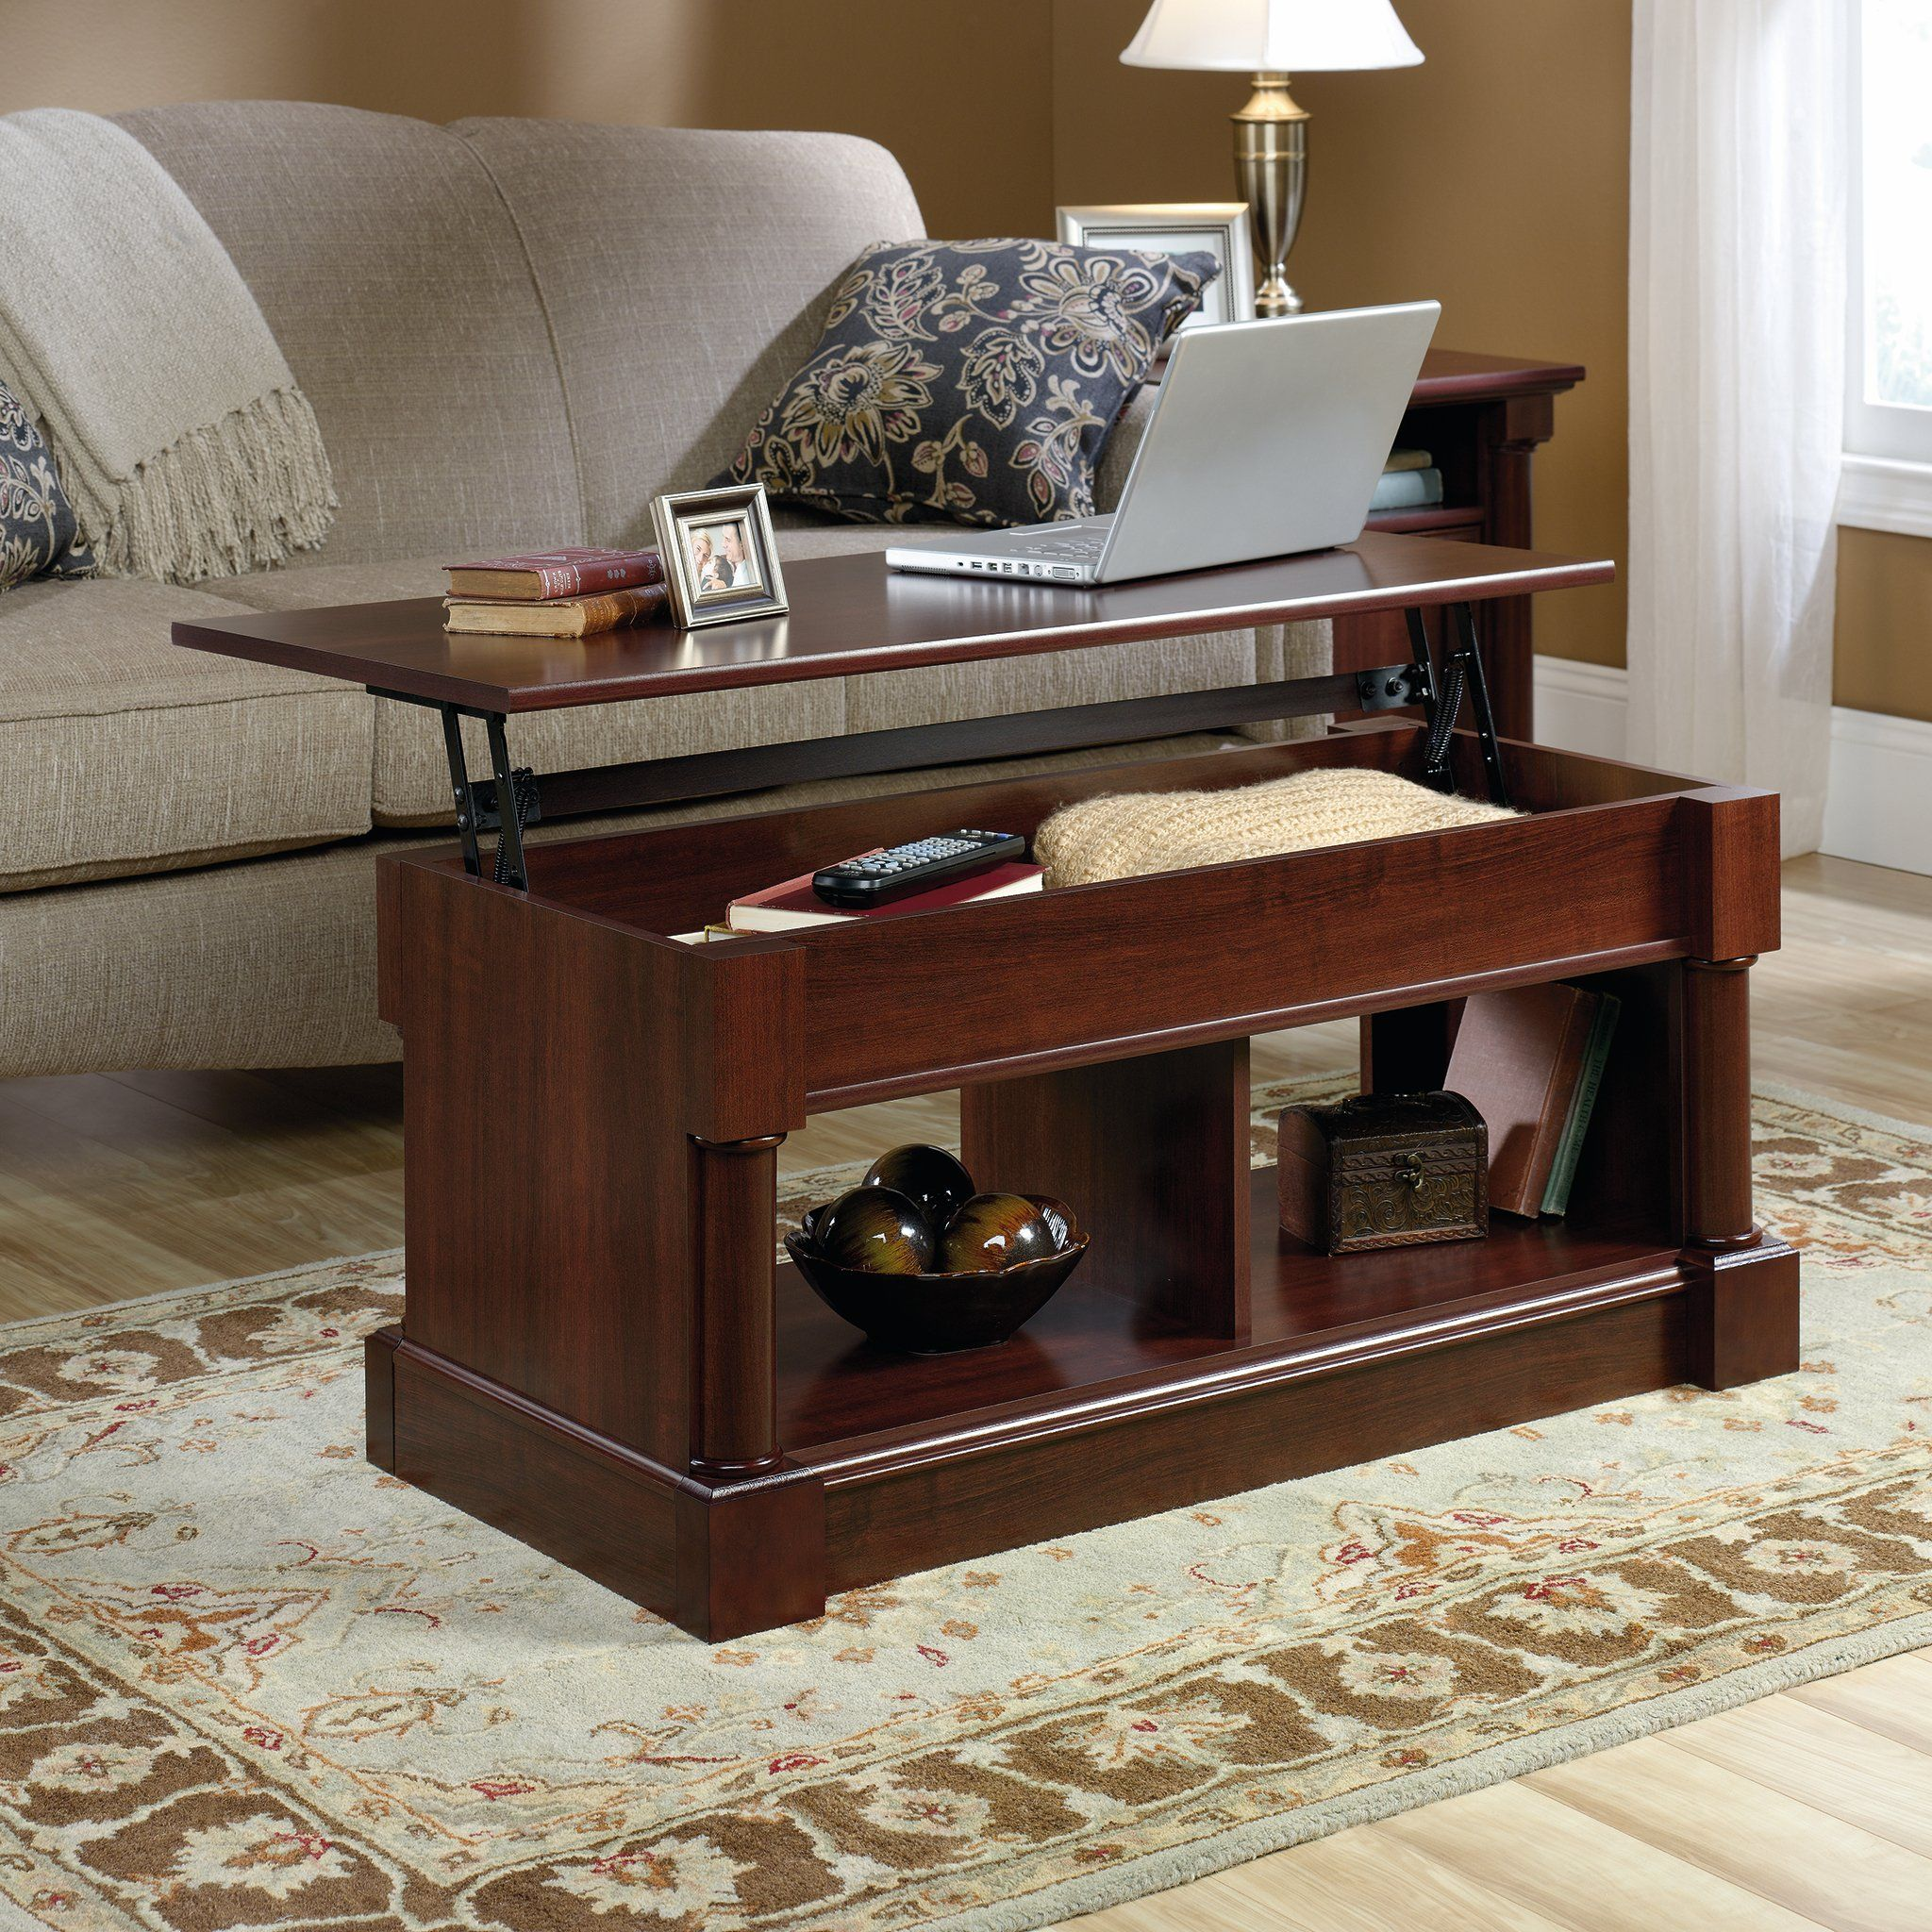 Lift Top Coffee Table Extra Hidden And Open Storage Space Work Surface Space Saving Rectangle Shape Ideal Coffee Table Lift Coffee Table Living Room Table Sets [ 2048 x 2048 Pixel ]